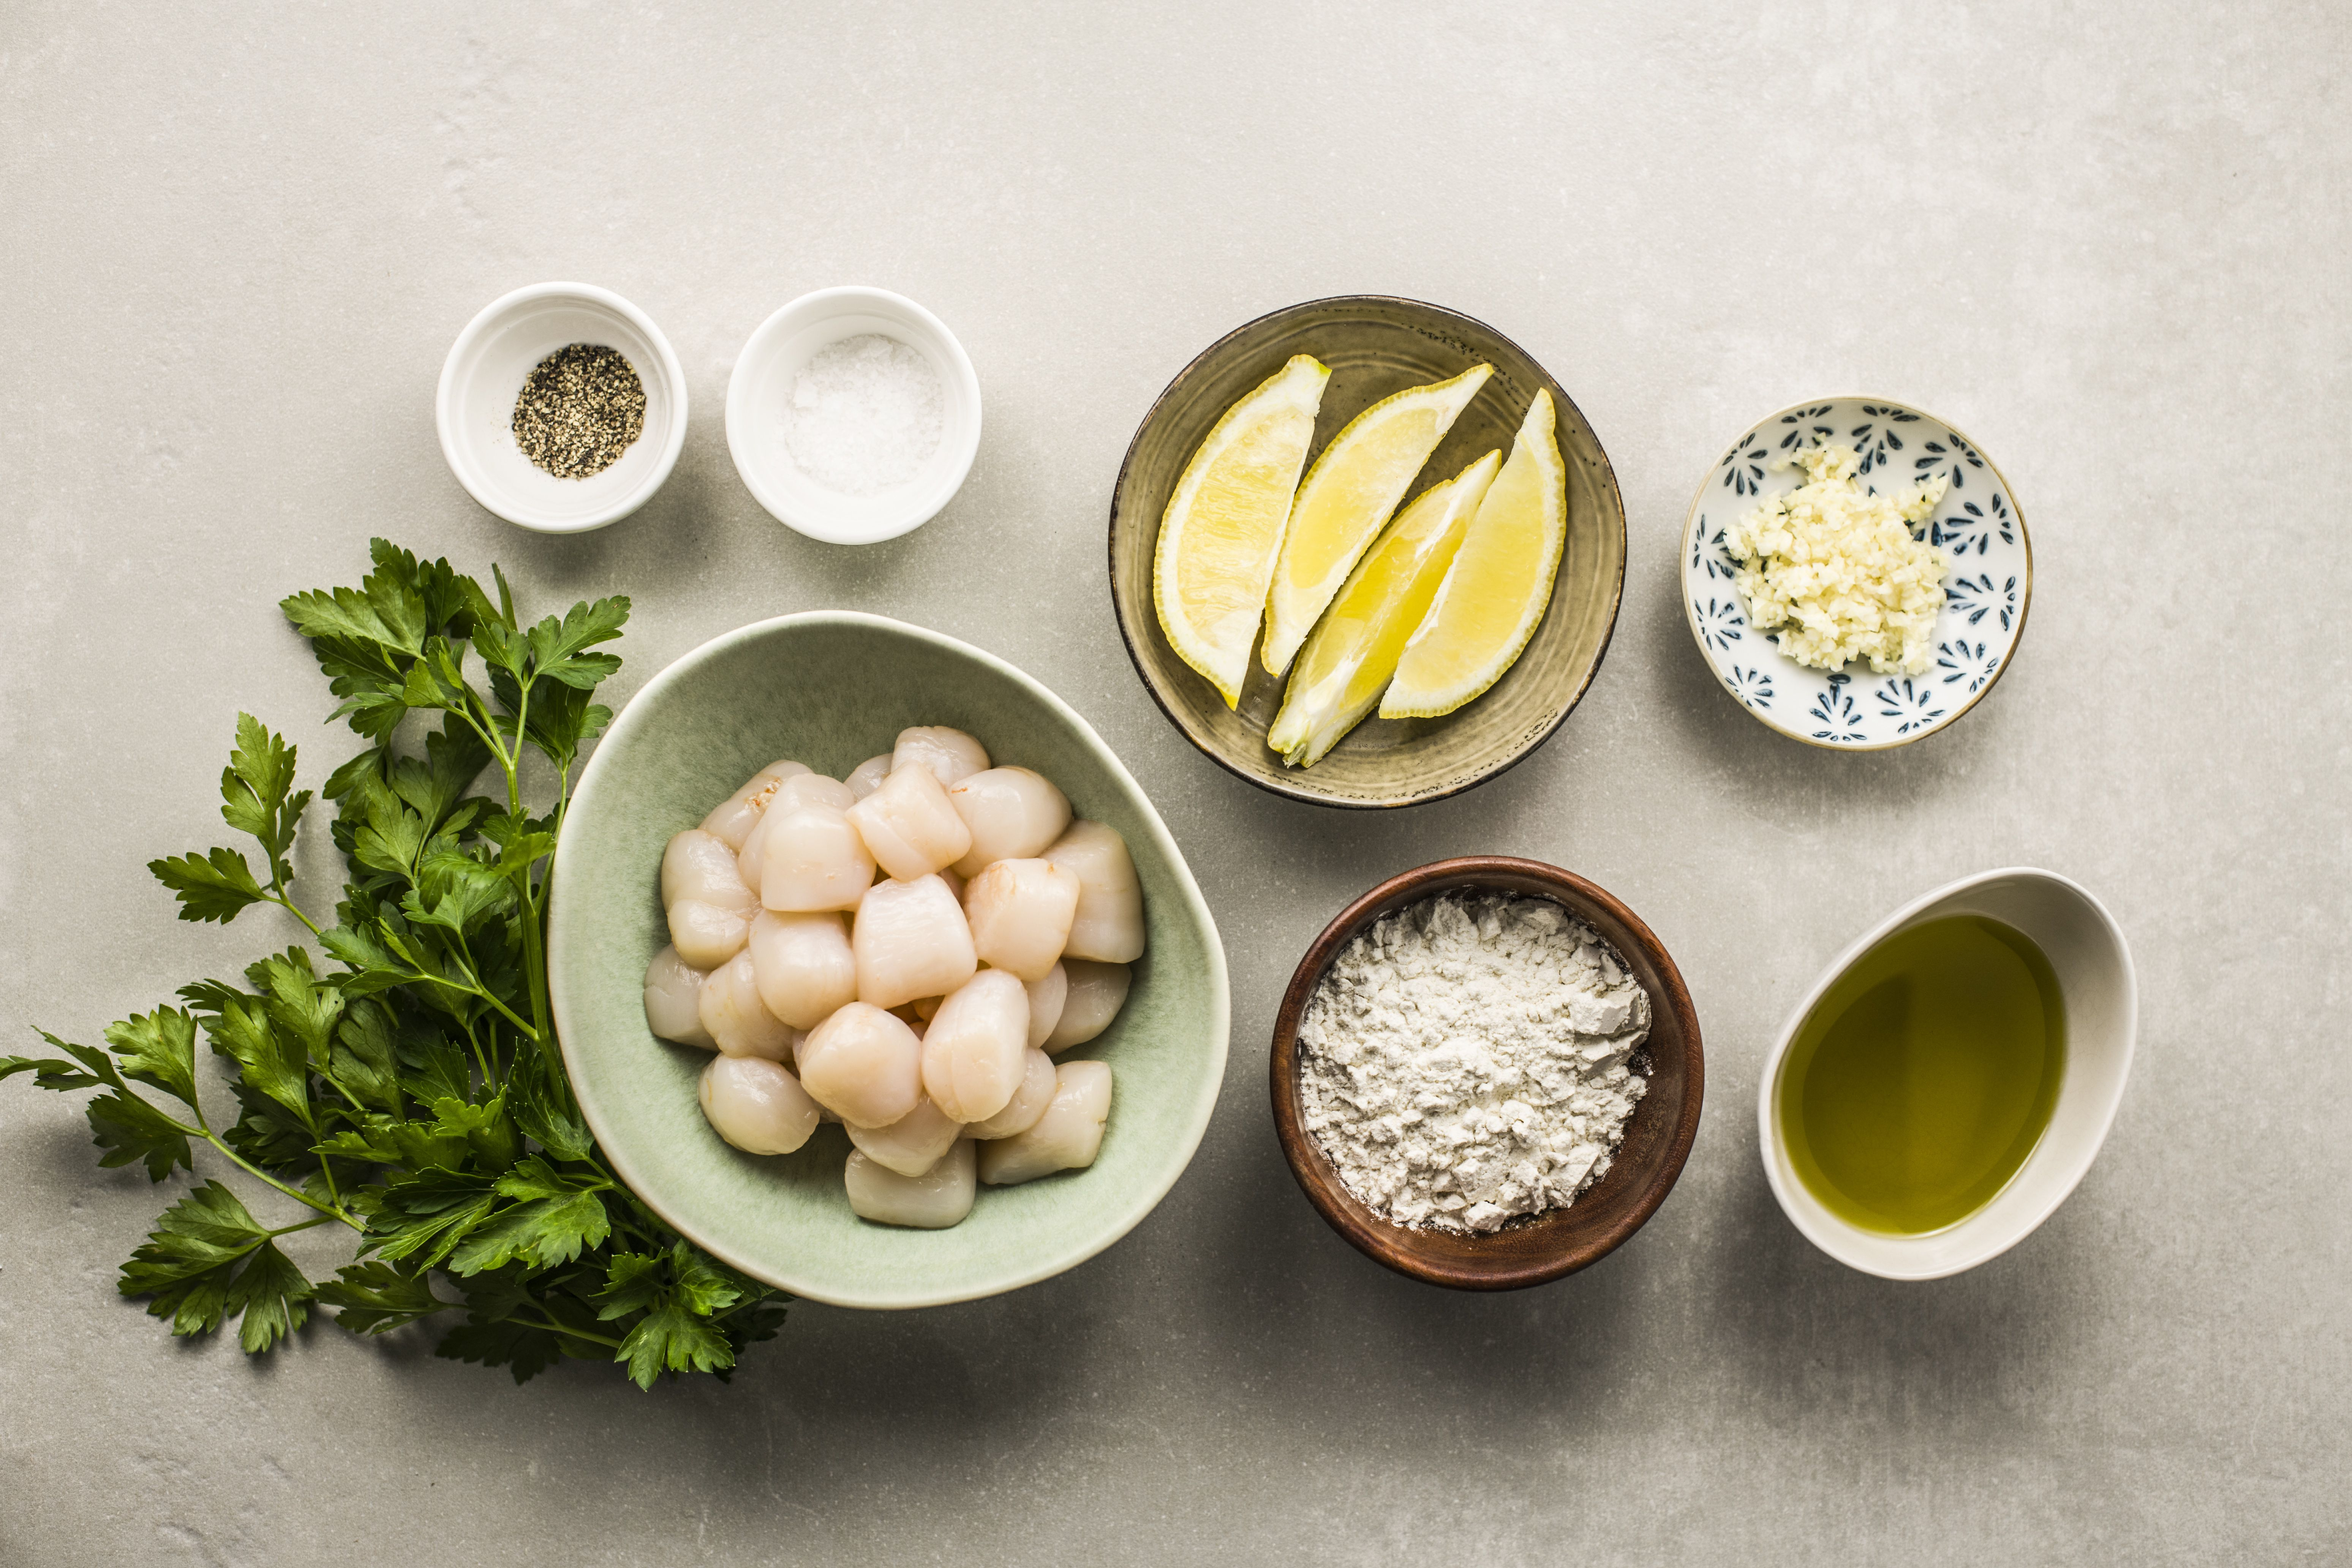 Ingredients for bay scallops with garlic